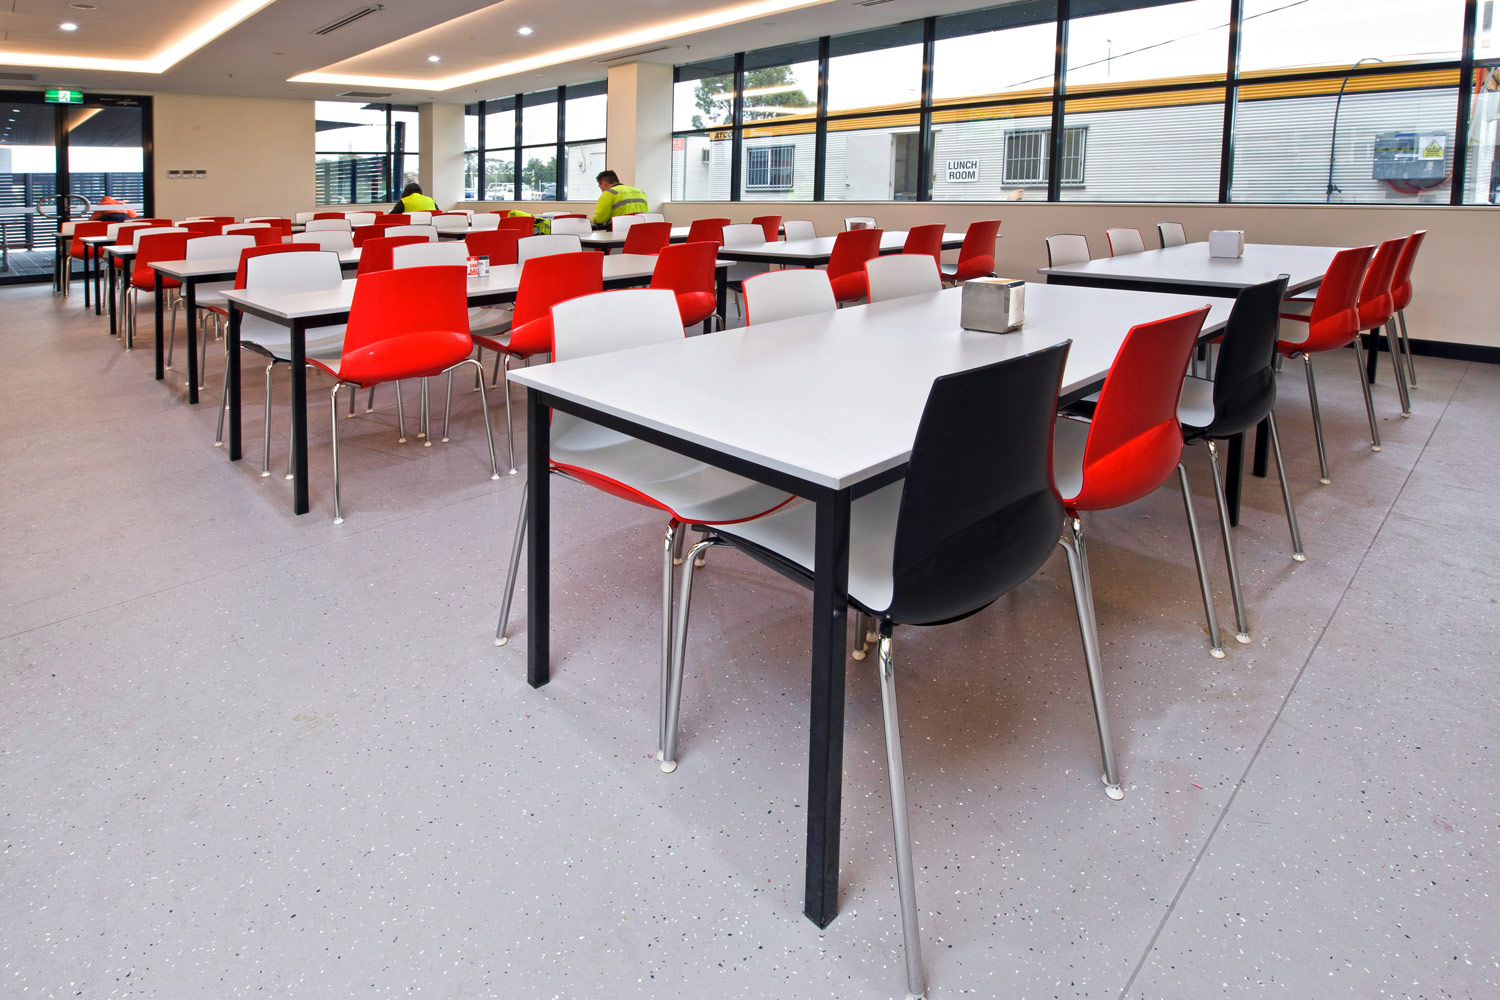 Neo chairs and steel frame lunch tables